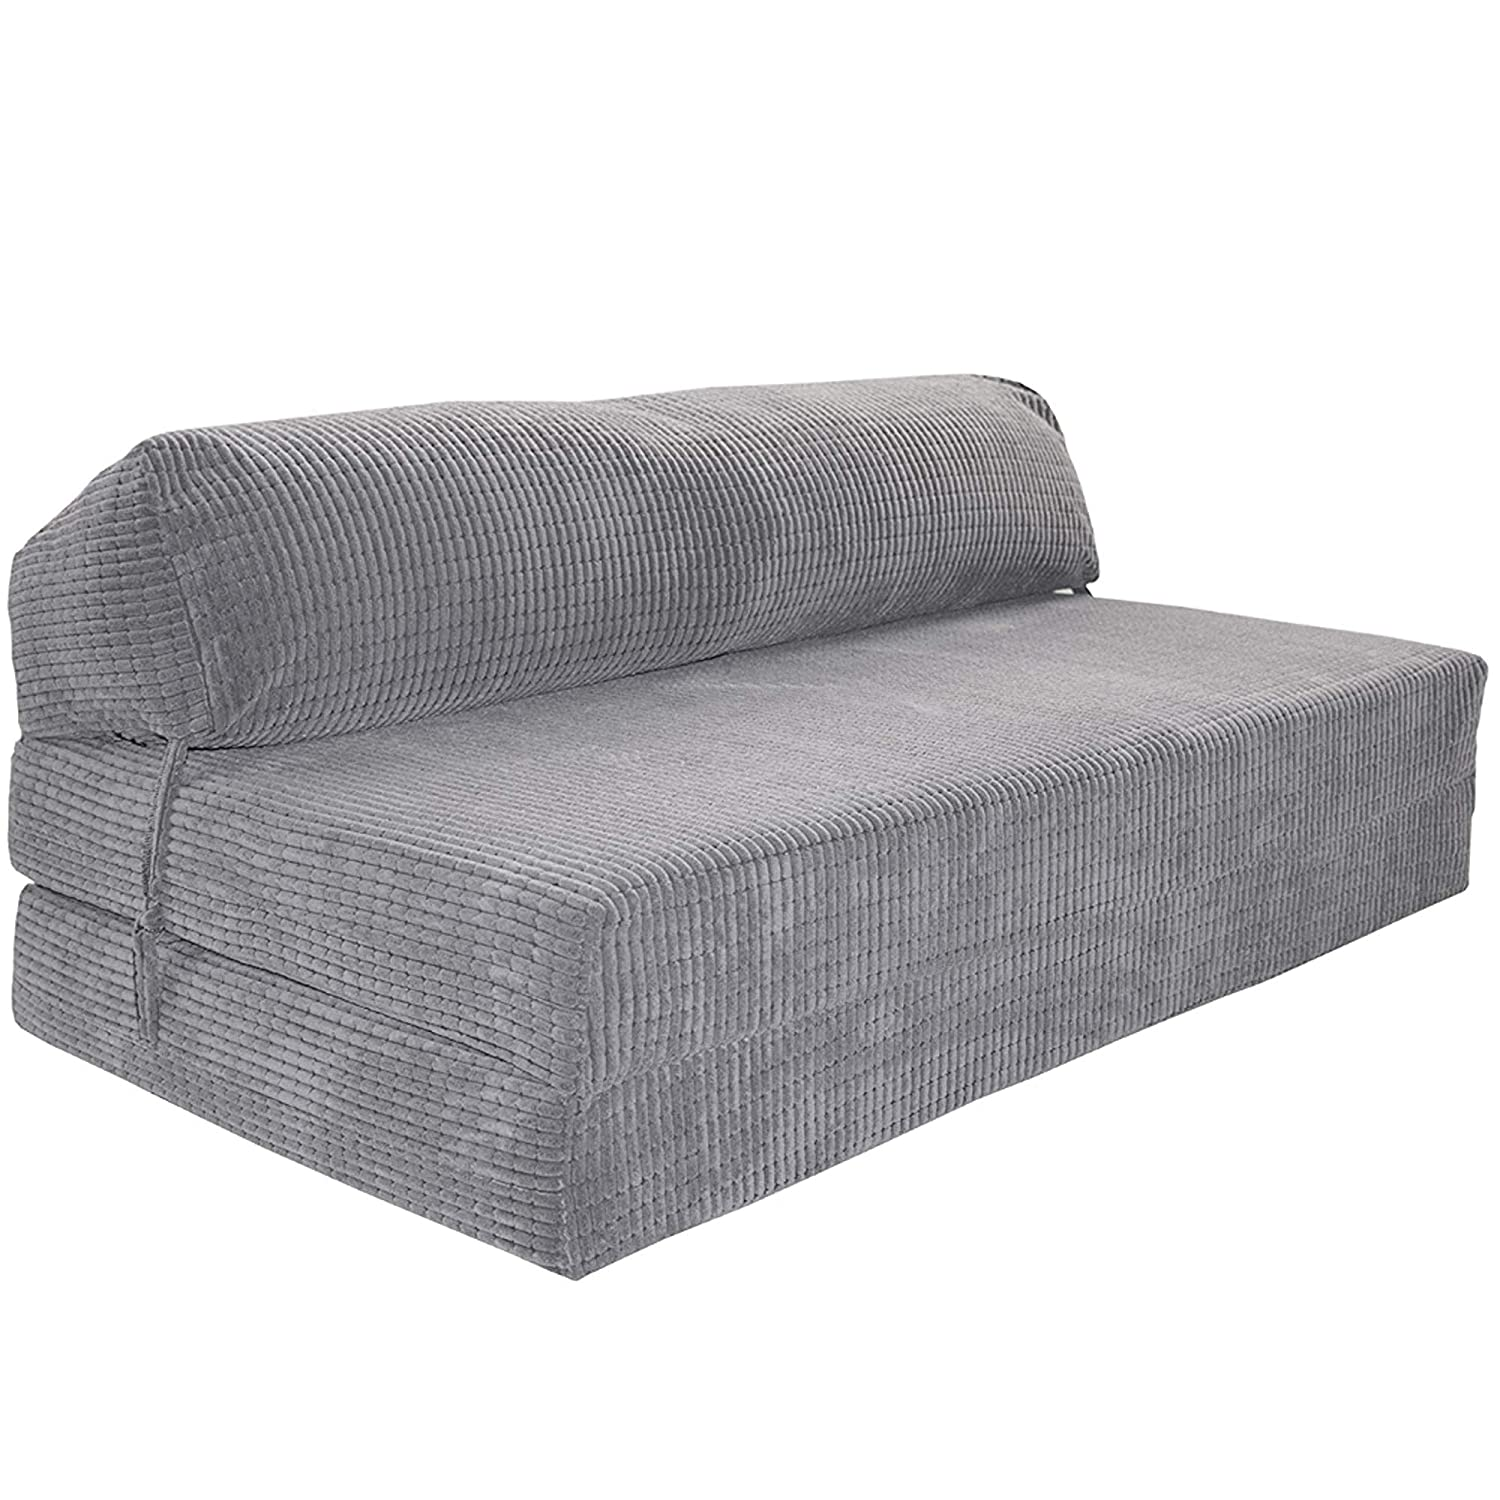 Enjoyable Gilda Futon Z Double Adult Sofa Bed Jazz Cushion Deluxe Da Vinci Cord Fabric Fold Out Mattress Fabric Bounce Back Fibre Blocks Premium Block Inzonedesignstudio Interior Chair Design Inzonedesignstudiocom